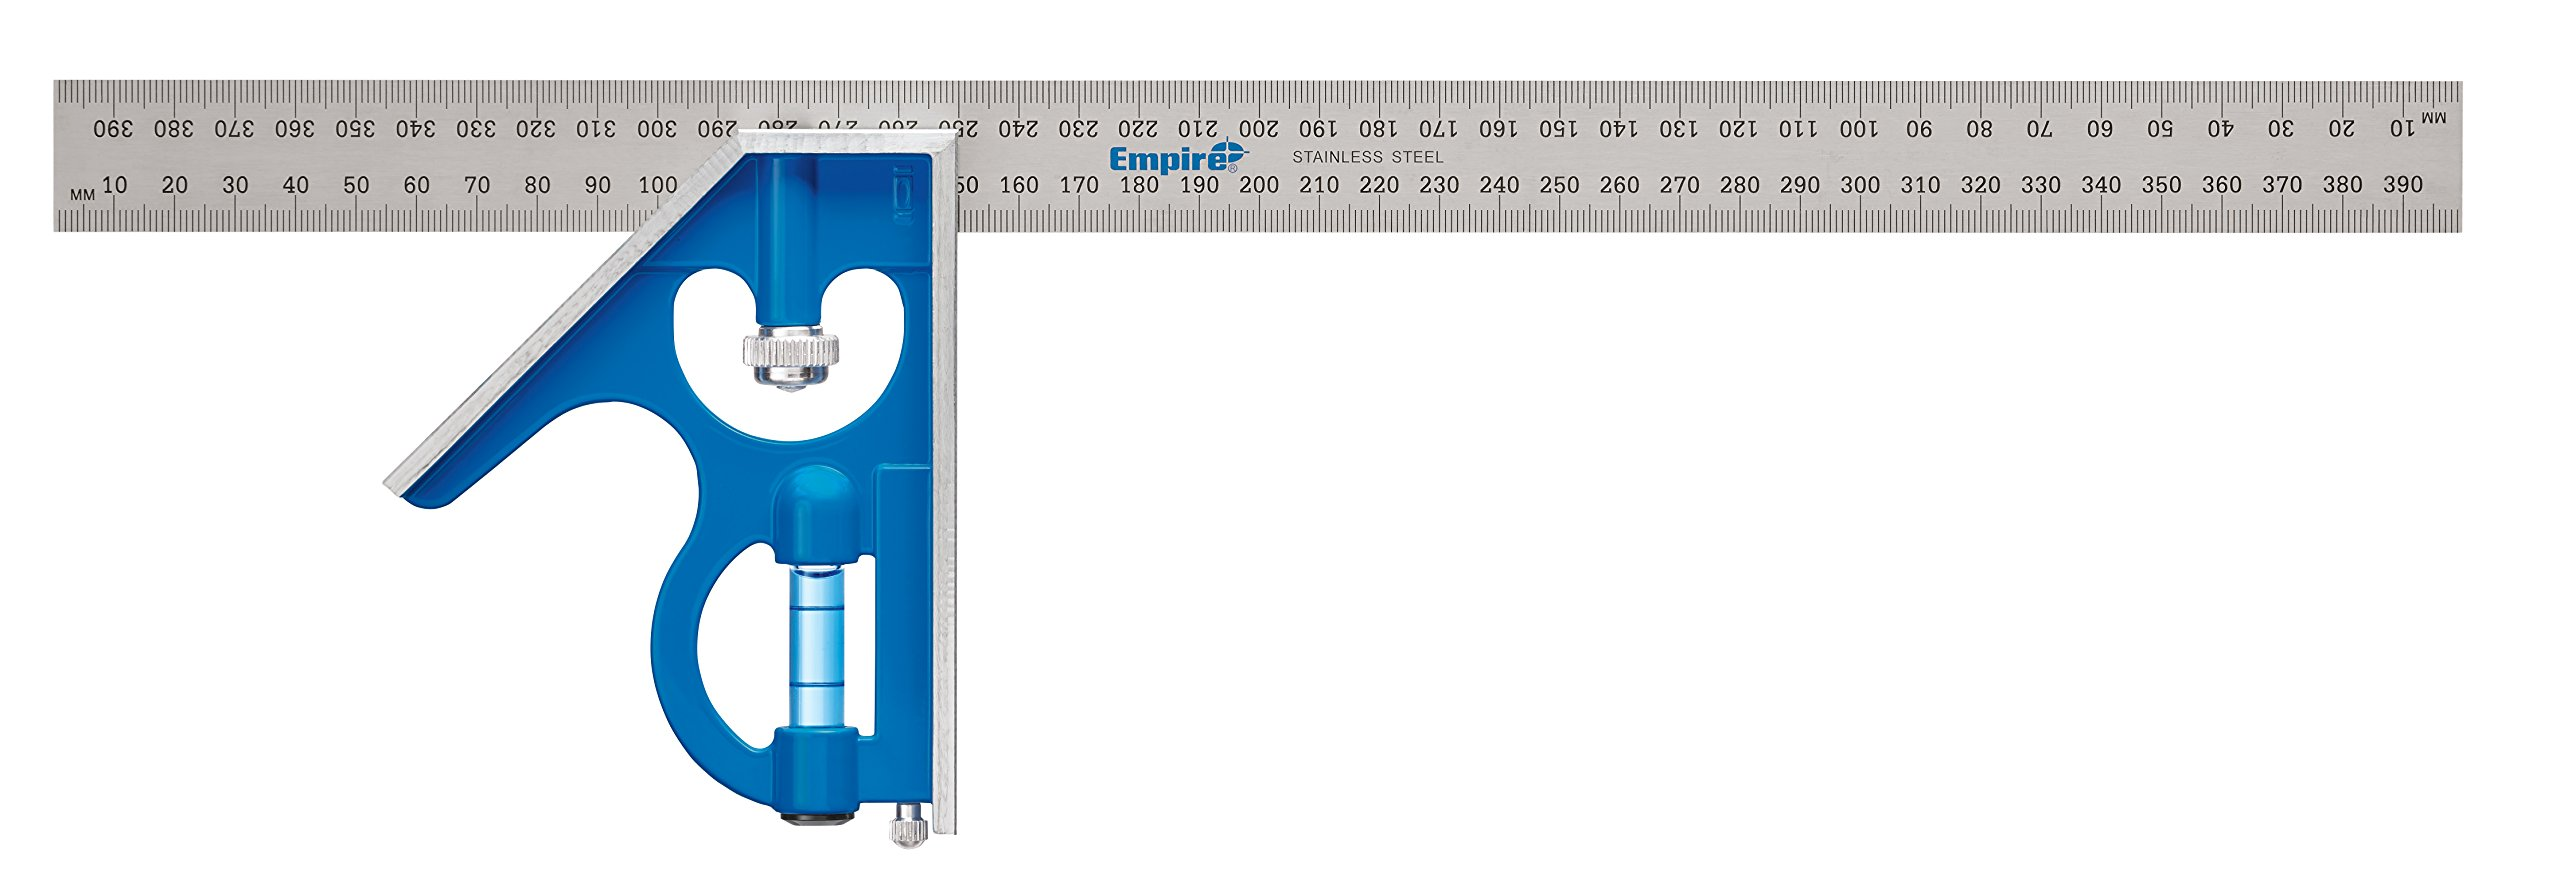 Empire Level E280M 16-Inch Heavy Duty Professional Combination Square With Etched Stainless Steel Blade, Metric Graduations and True Blue Vial